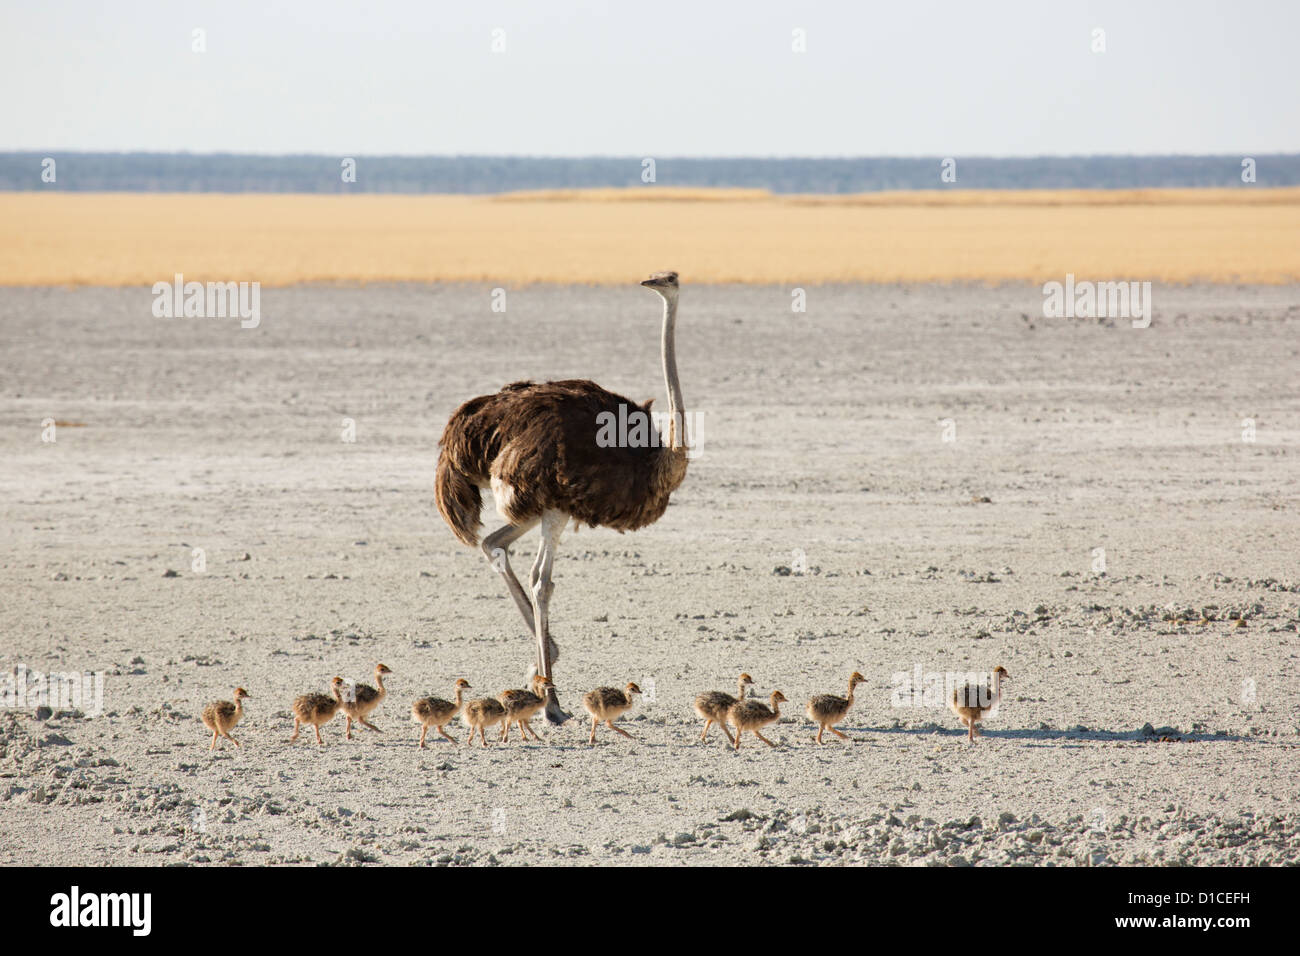 Female ostrich and her brood of chicks in Namibia - Stock Image